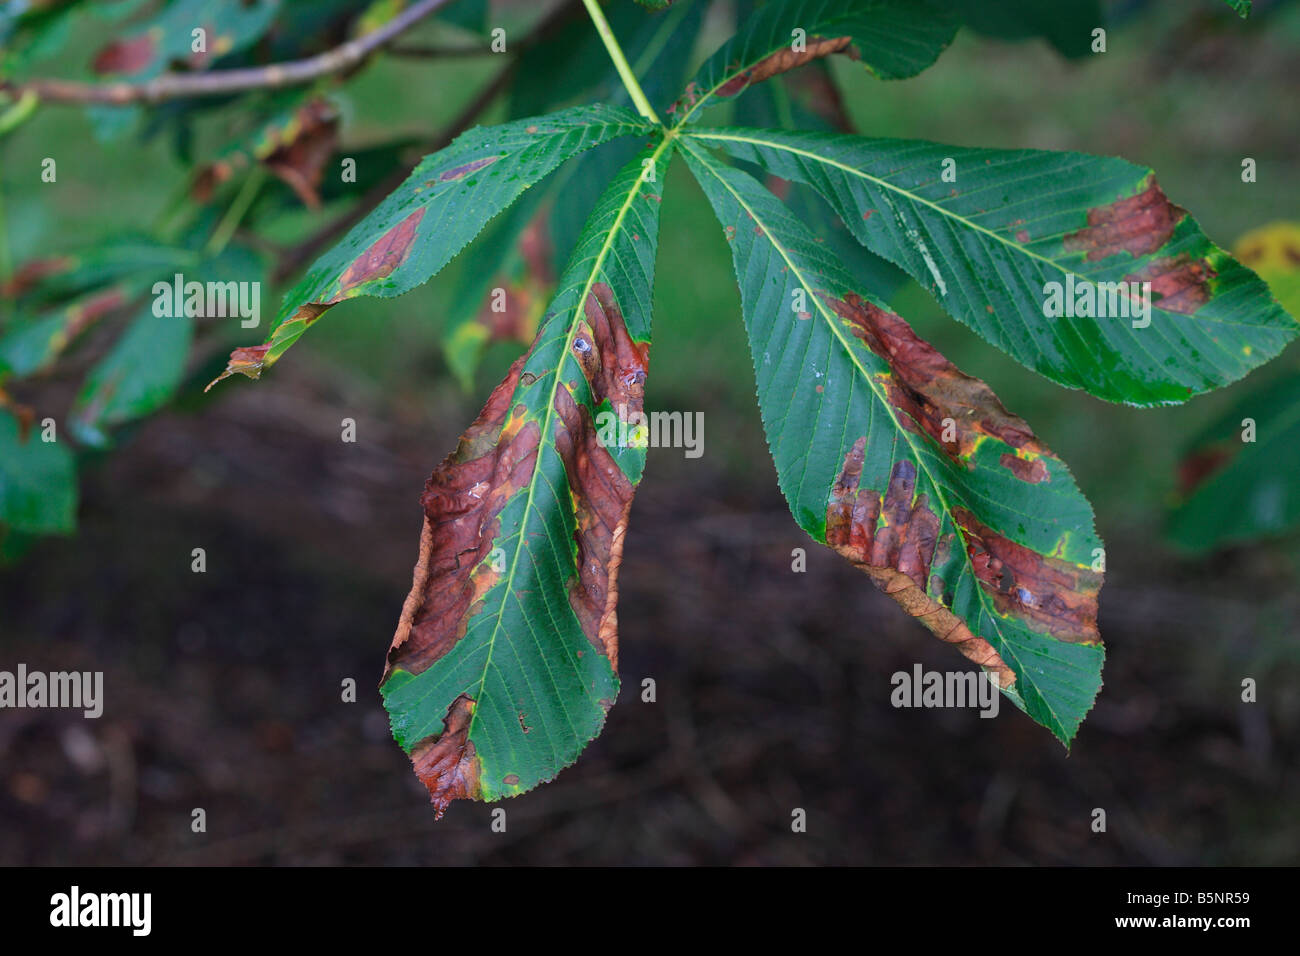 HORSE CHESTNUT LEAF BLOTCH Guignardia aesculi ON LEAVES - Stock Image